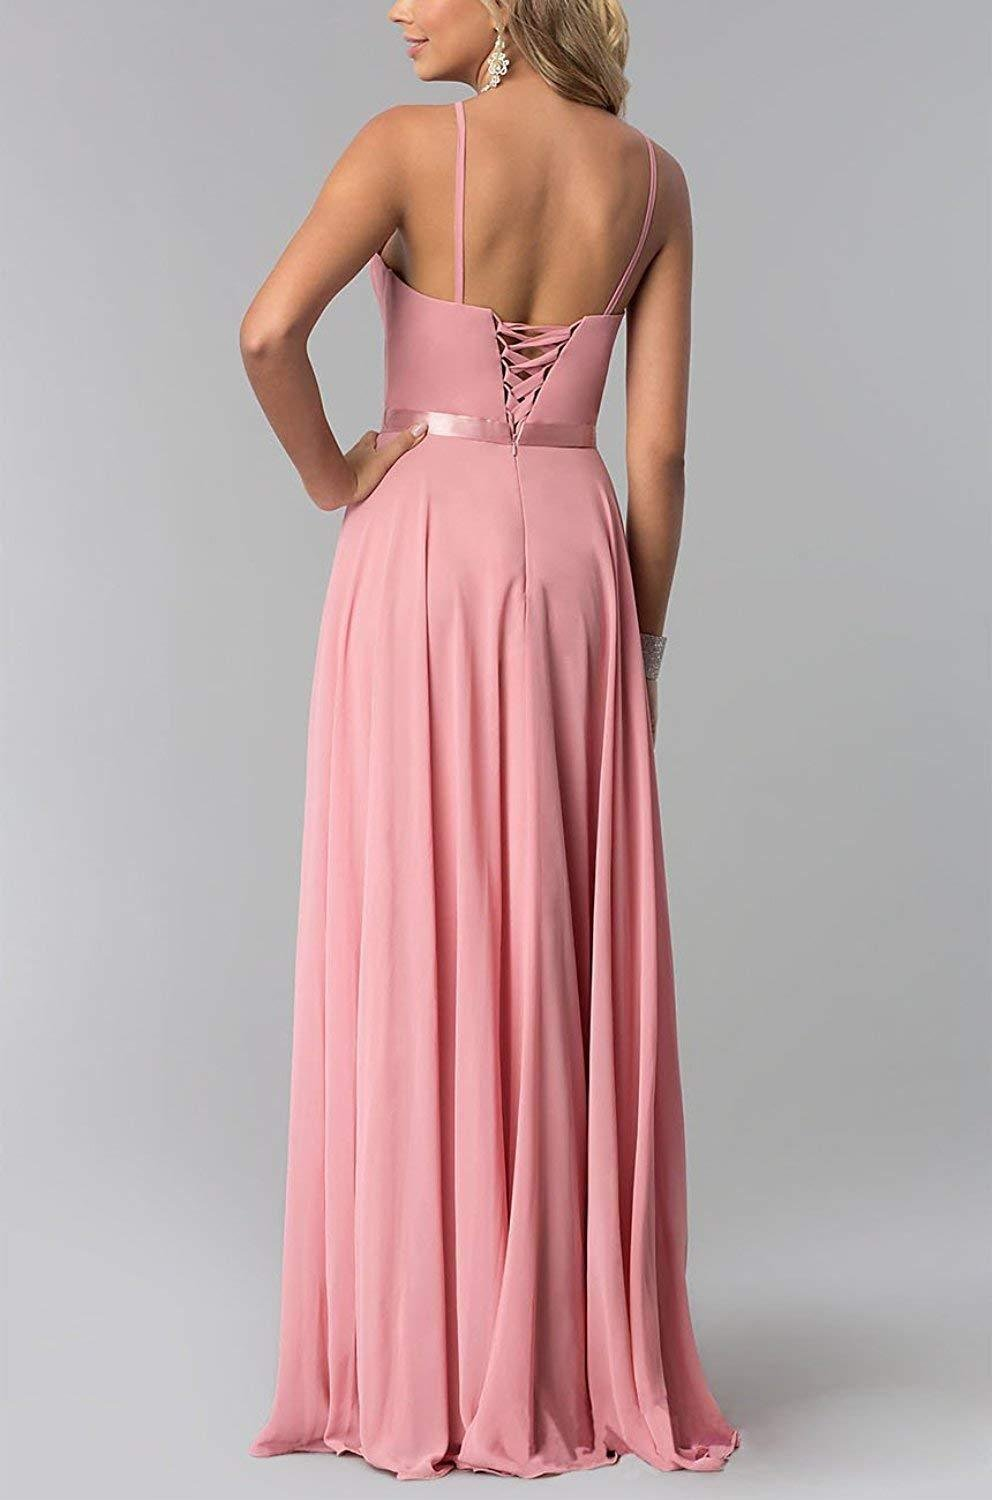 5ef3703ed85 ... Chiffon Women Formal Backless Simple Prom Party Gown Blush 4.   